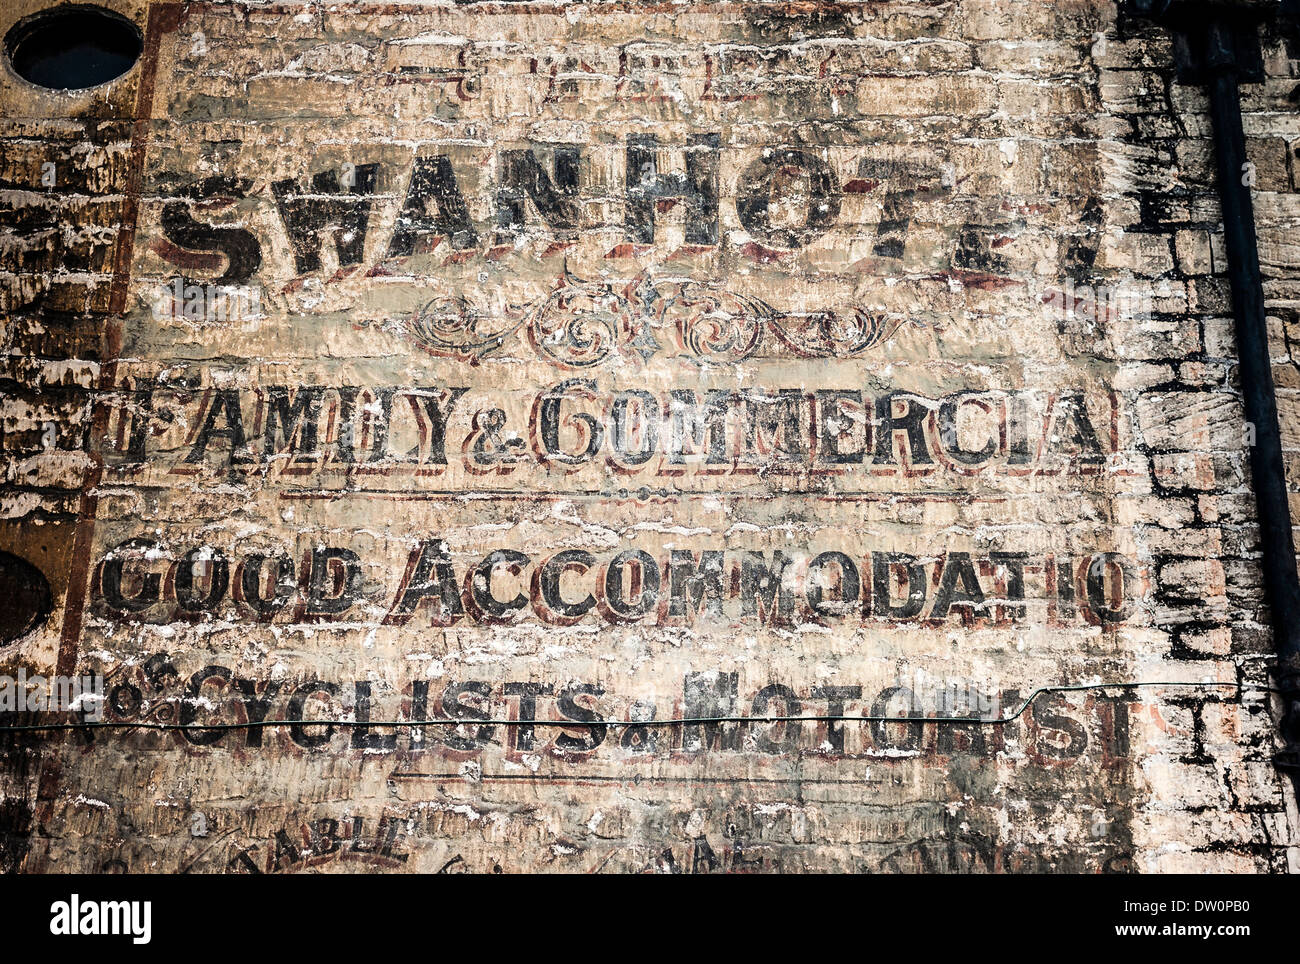 Old historical wall signs advertising services of the Swan Hotel in Bradford on Avon in yesteryear Stock Photo